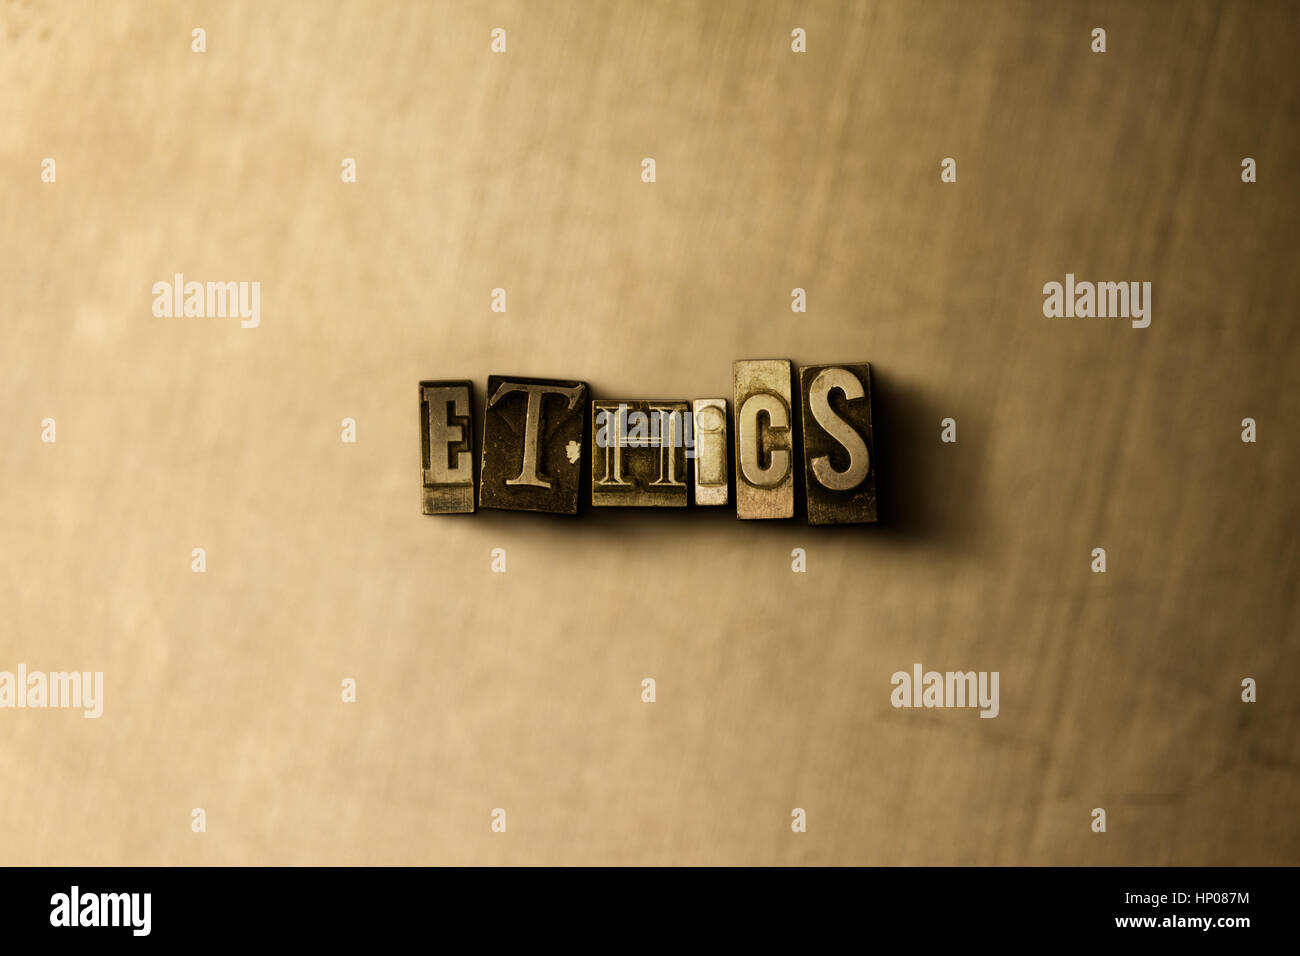 ETHICS - close-up of grungy vintage typeset word on metal backdrop. Royalty free stock illustration.  Can be used - Stock Image